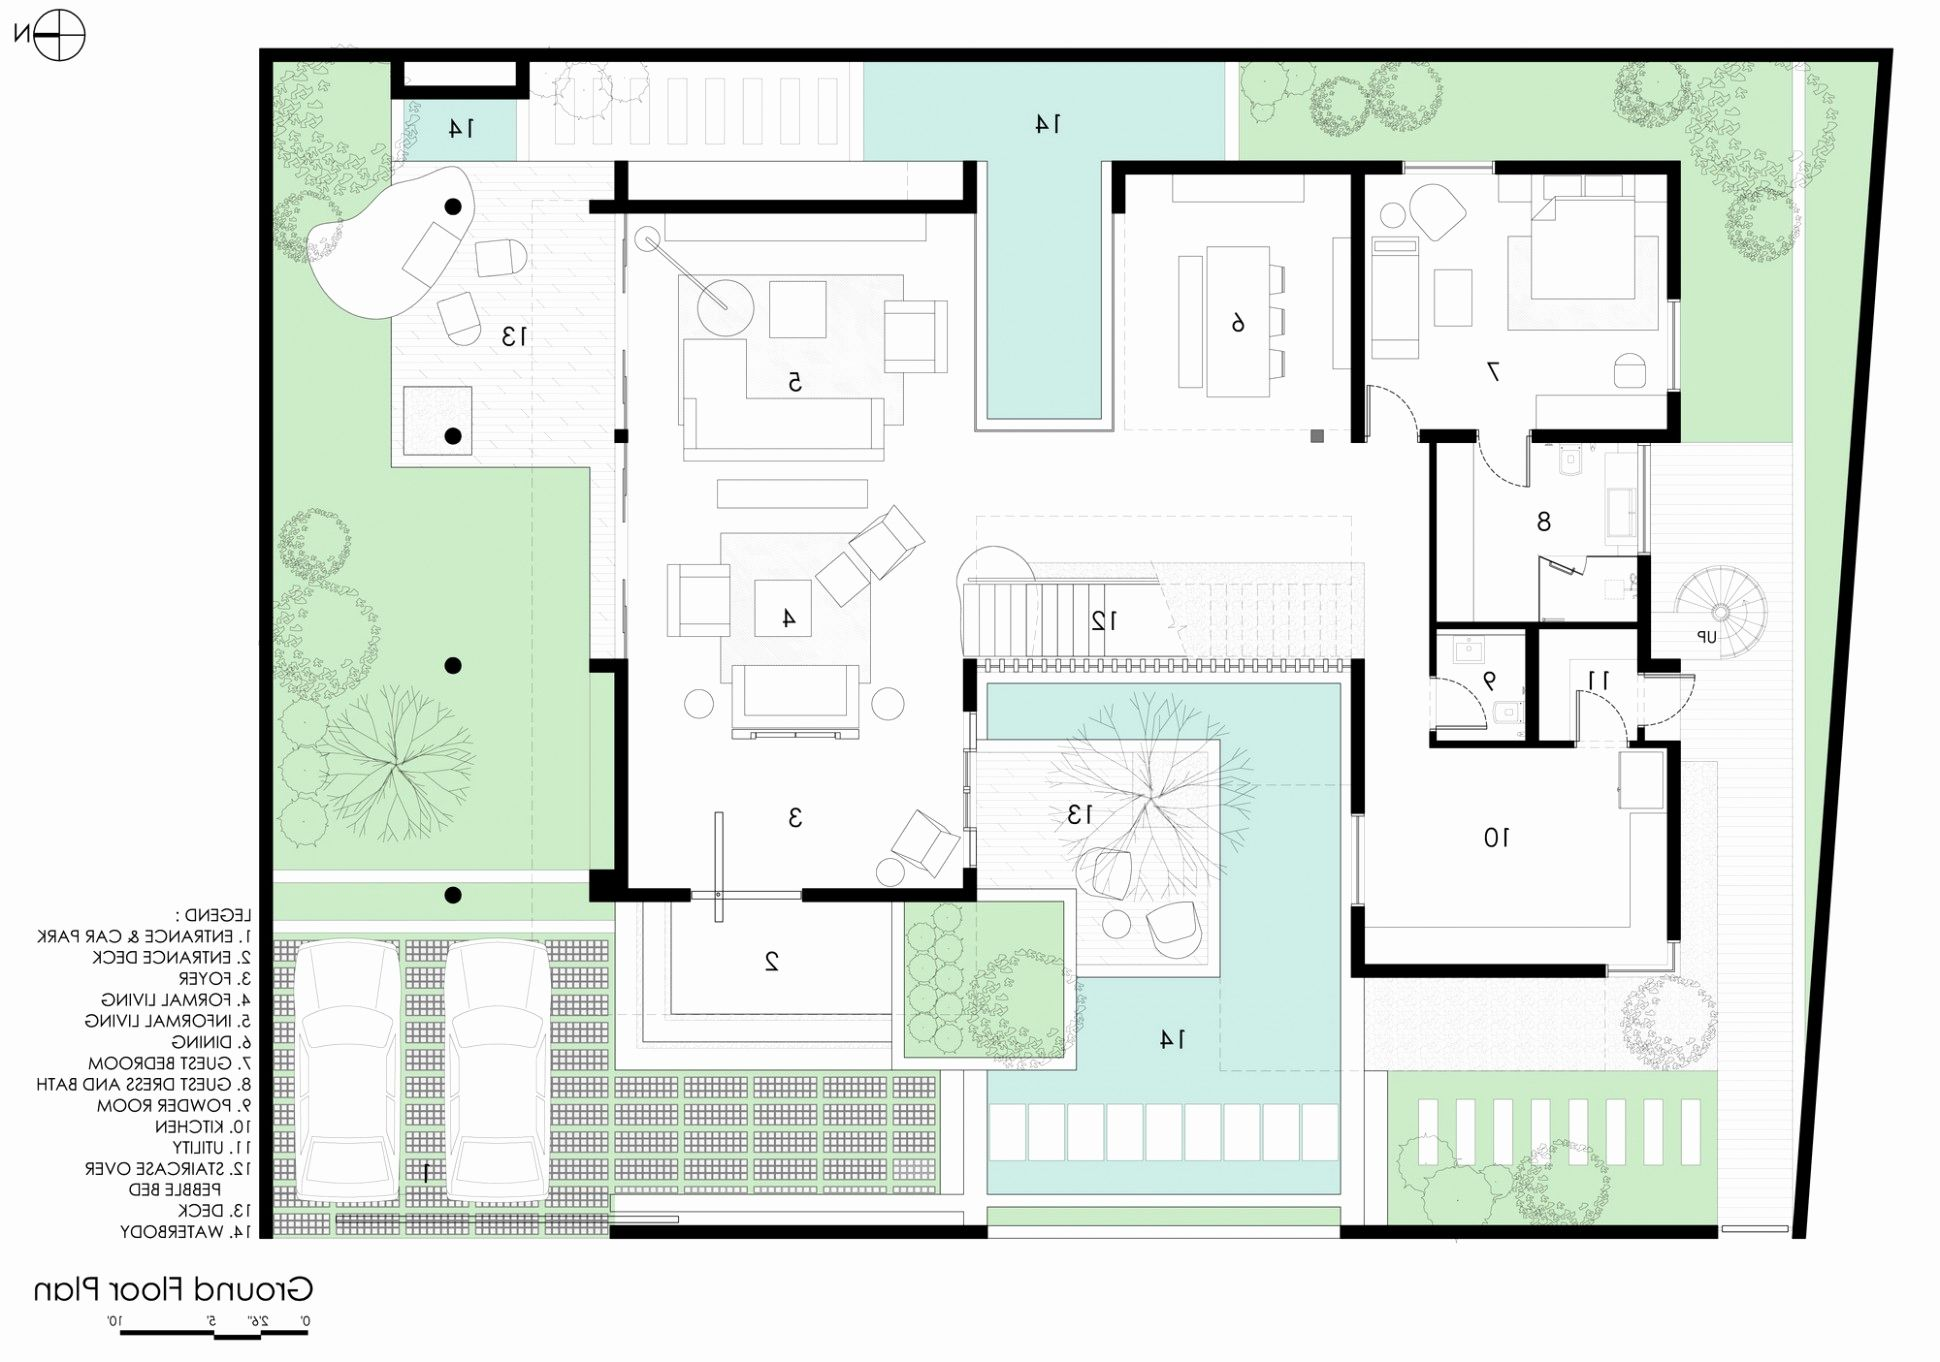 Awesome Courtyard House Plans Home Gallery U-shaped Small ...